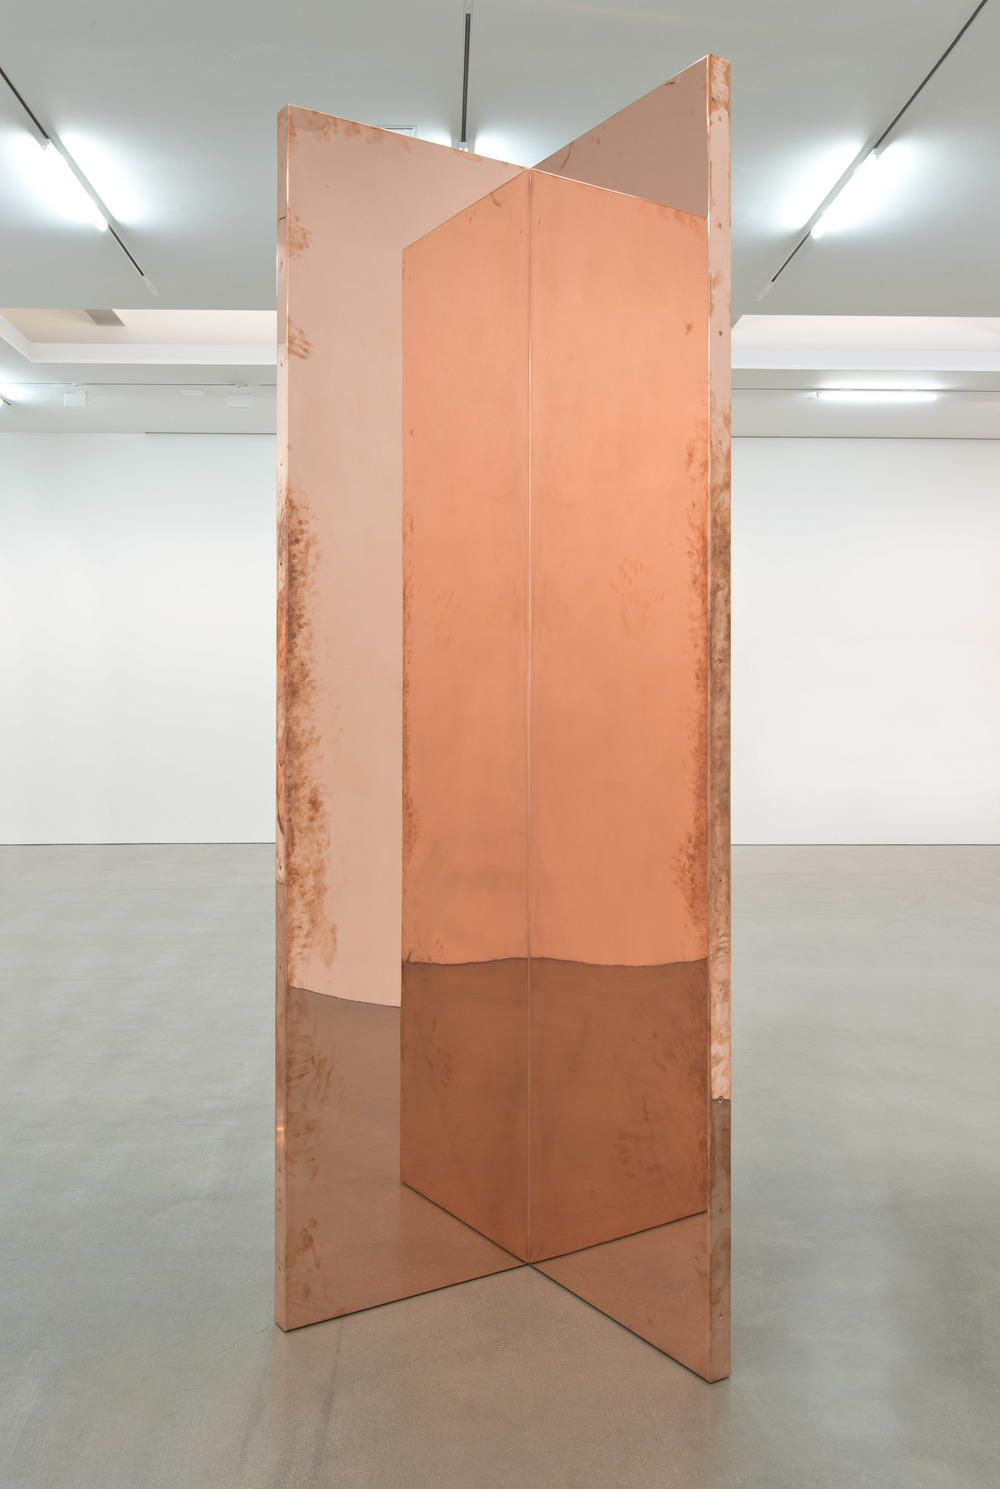 "Copper Surrogate (60"" x 120"" 48 ounce C11000 Copper Alloy, 90º Bend, 120"" Bisection: February 19-24/April 5, 2014, Los Angeles, California)    2014   Polished copper  120 x 30 x 30 inches   Surrogates (Full Sheet, Art Handling), 2011–"